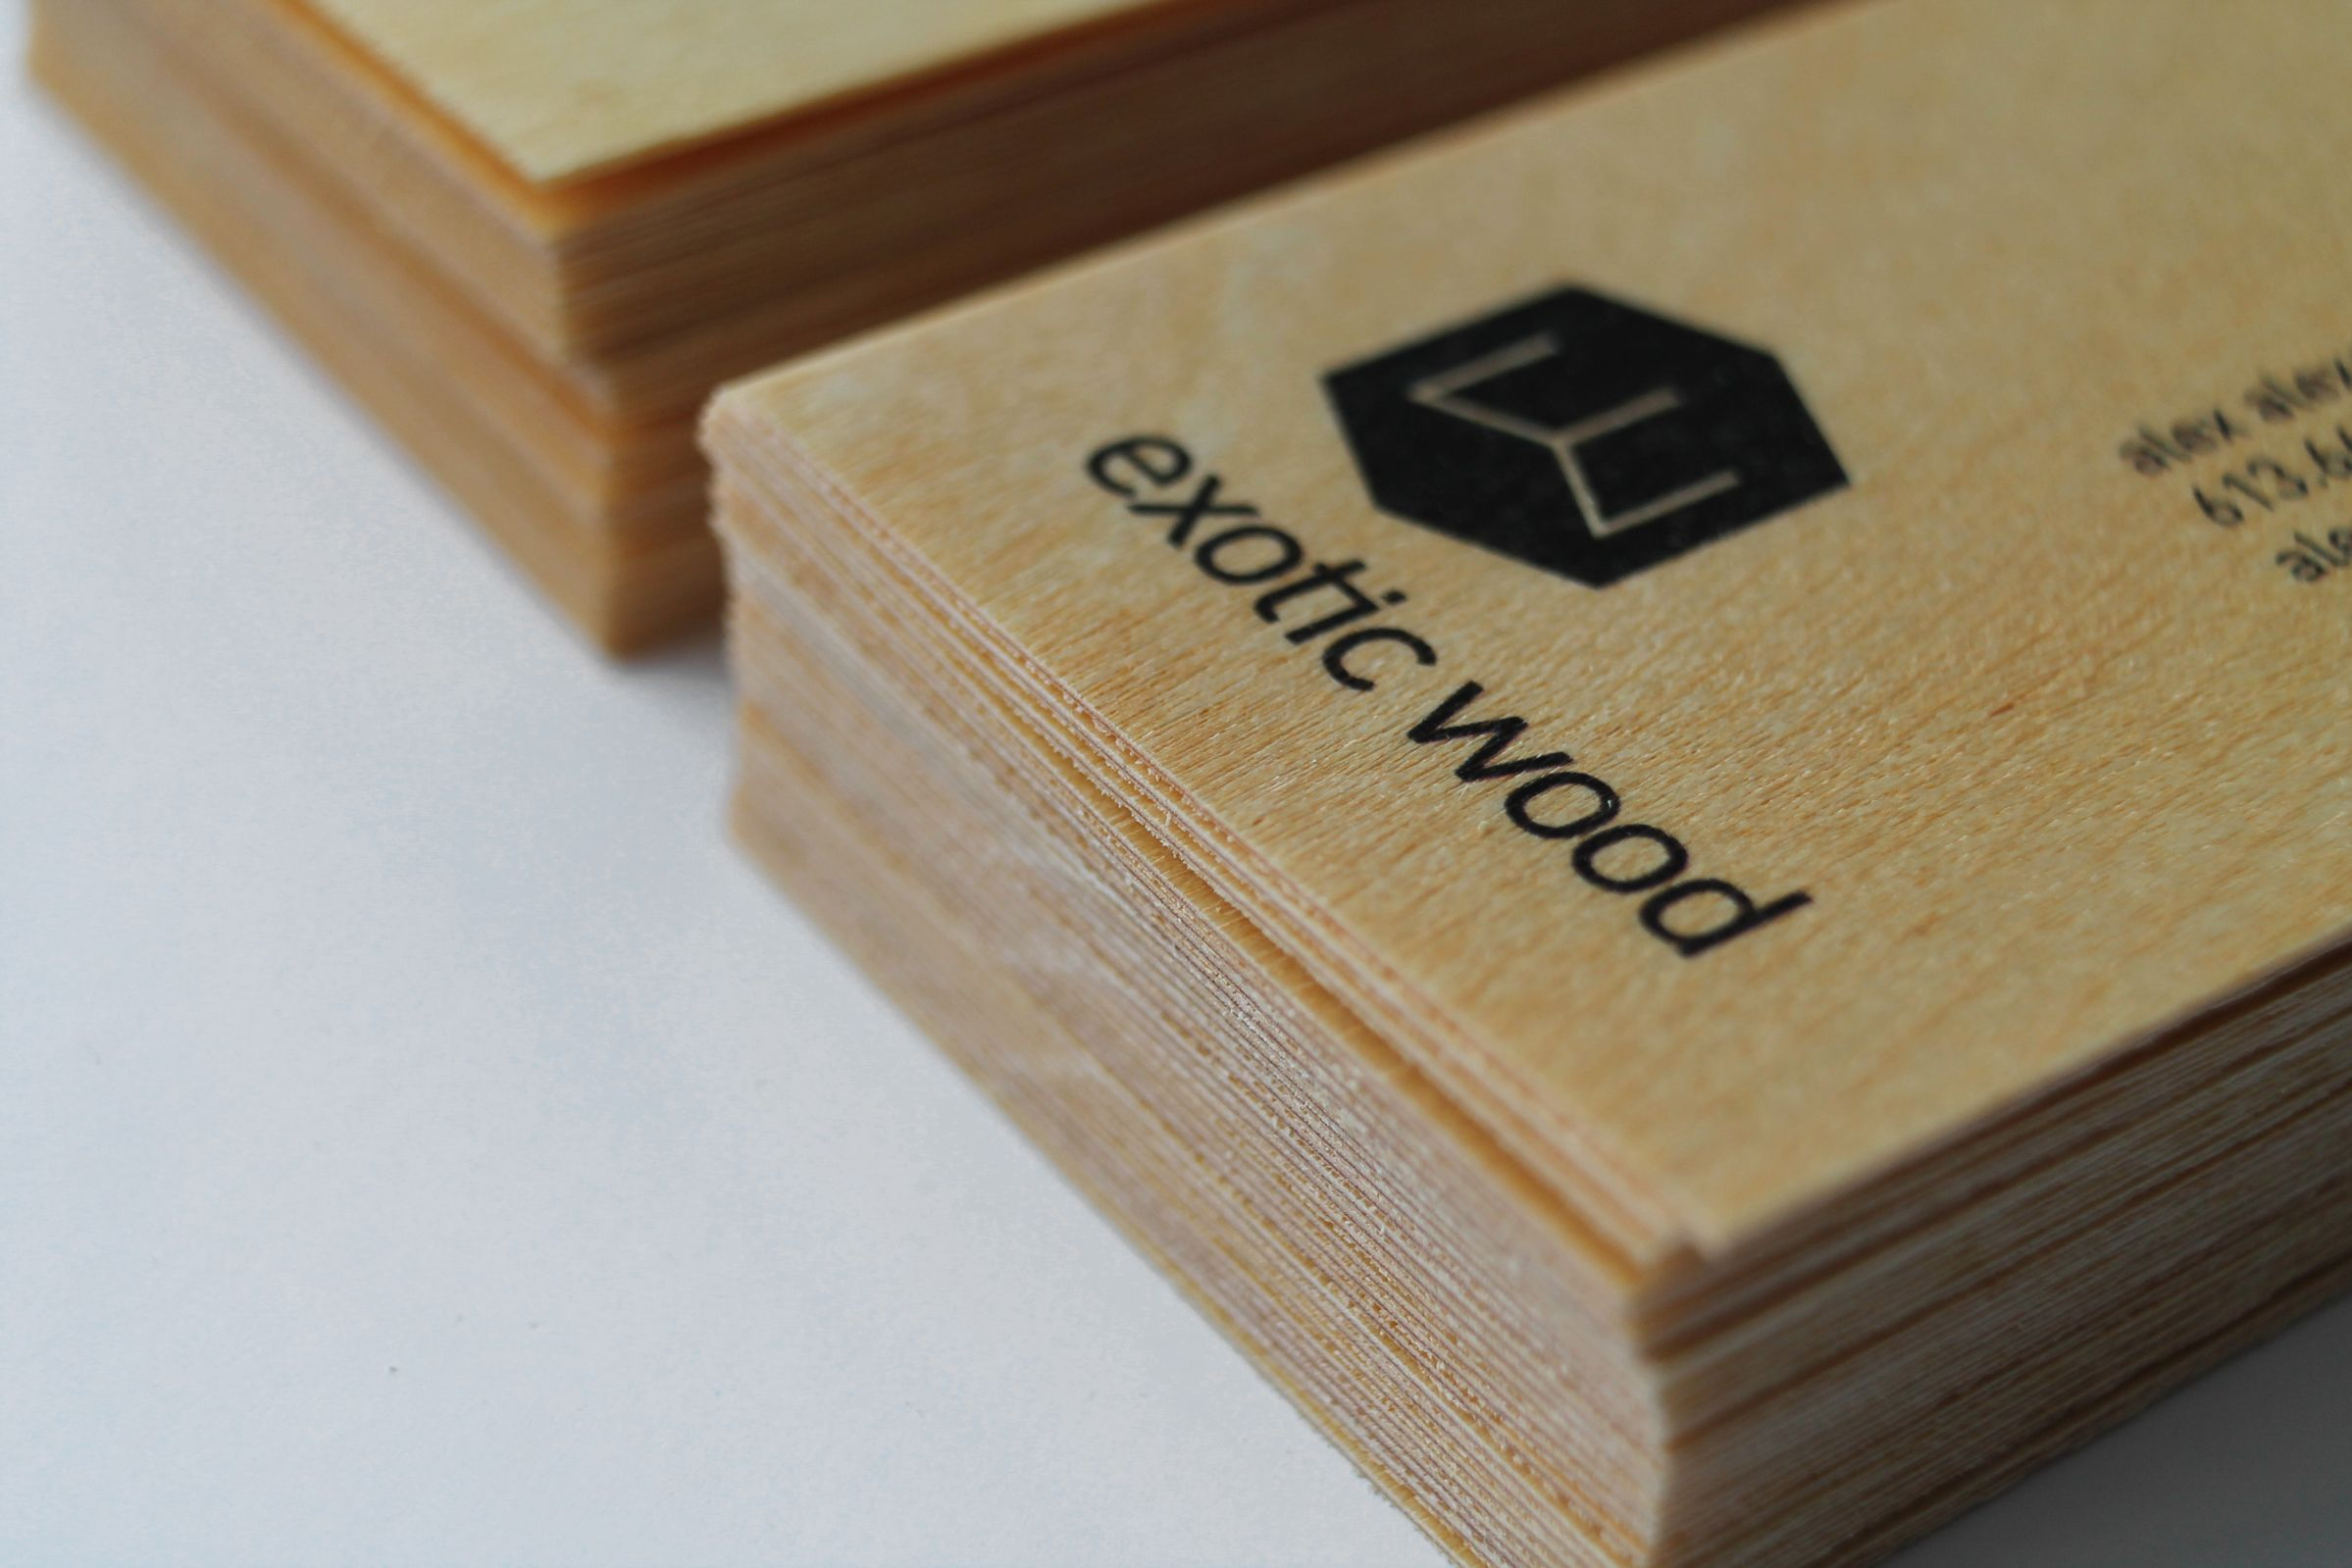 Wooden business cards for Exotic Wood, an Ottawa furniture manufacturer, by Graphic Design Studio idApostle